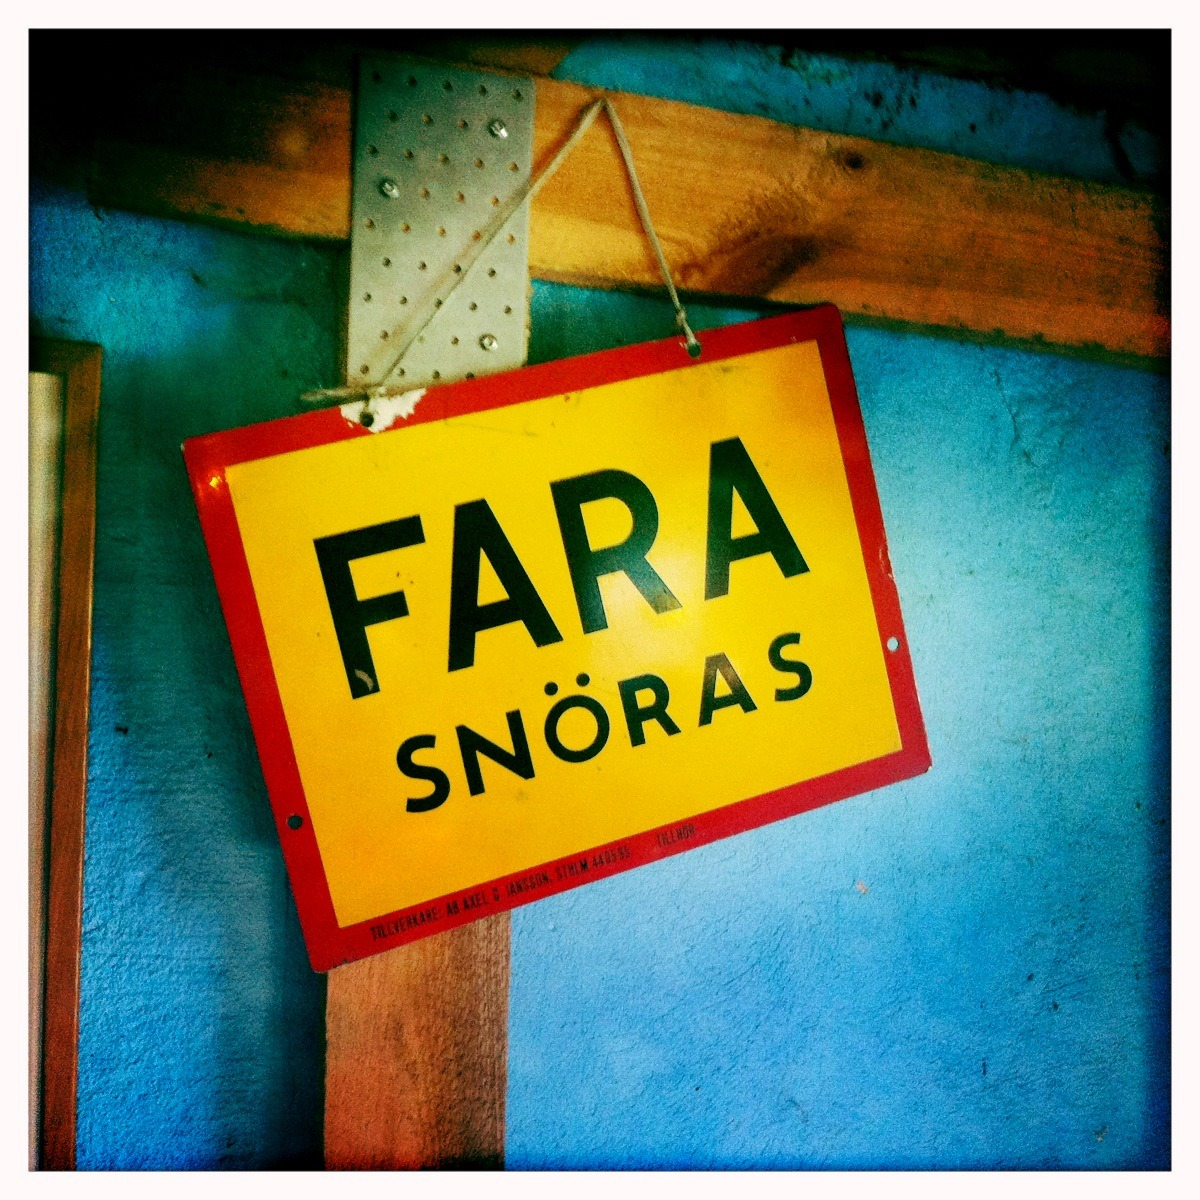 Poking around Fårö Island in Sweden, Bergman's old haunt.